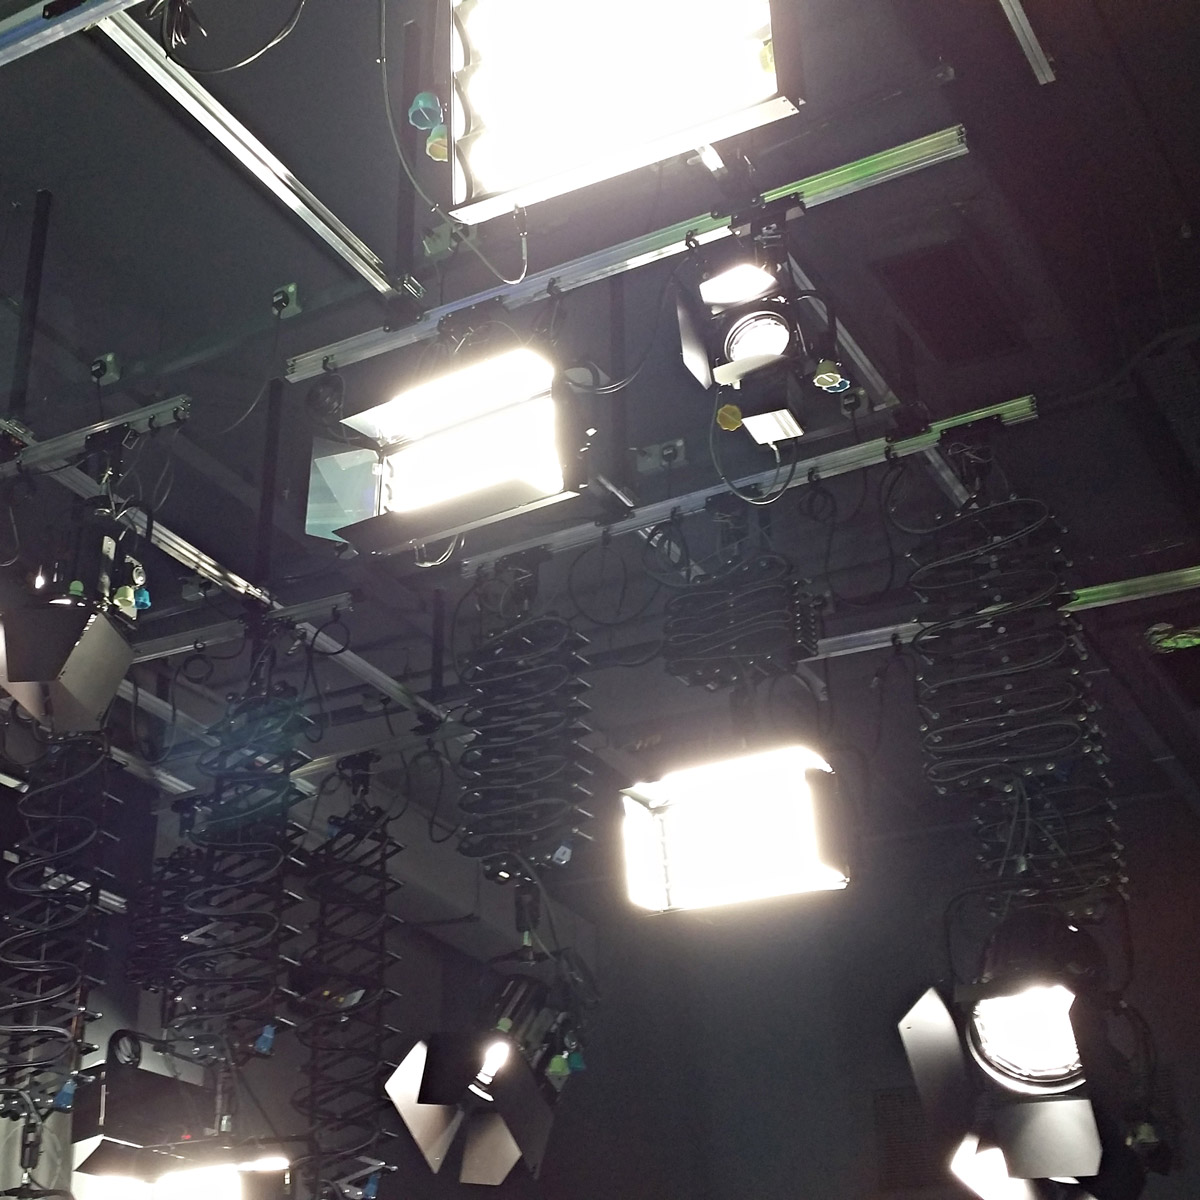 Cosmolight brand offers an extensive range of portable professional luminaires and accessories for video productions photographic applications